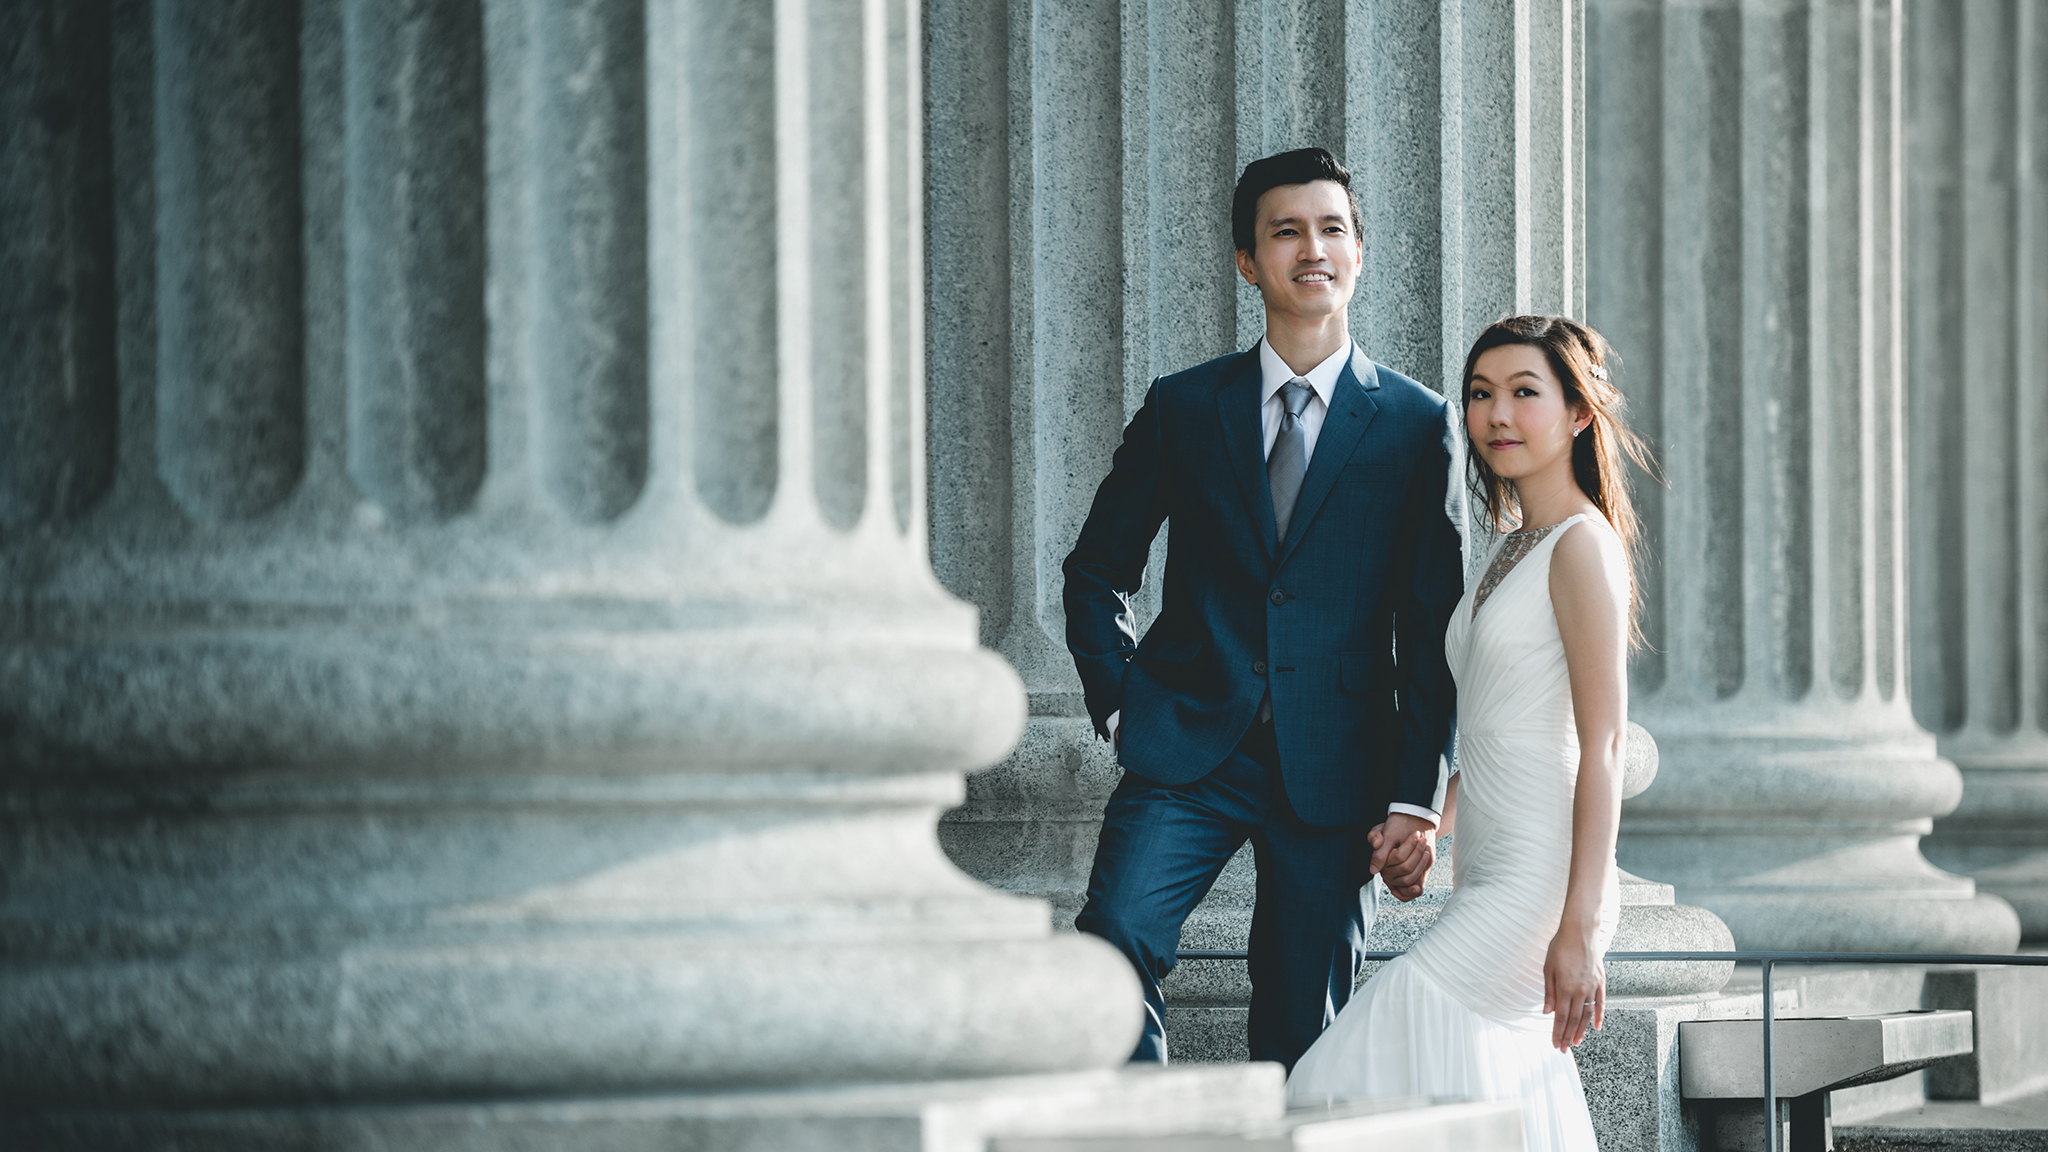 Prewedding National Gallery 00003b.JPG